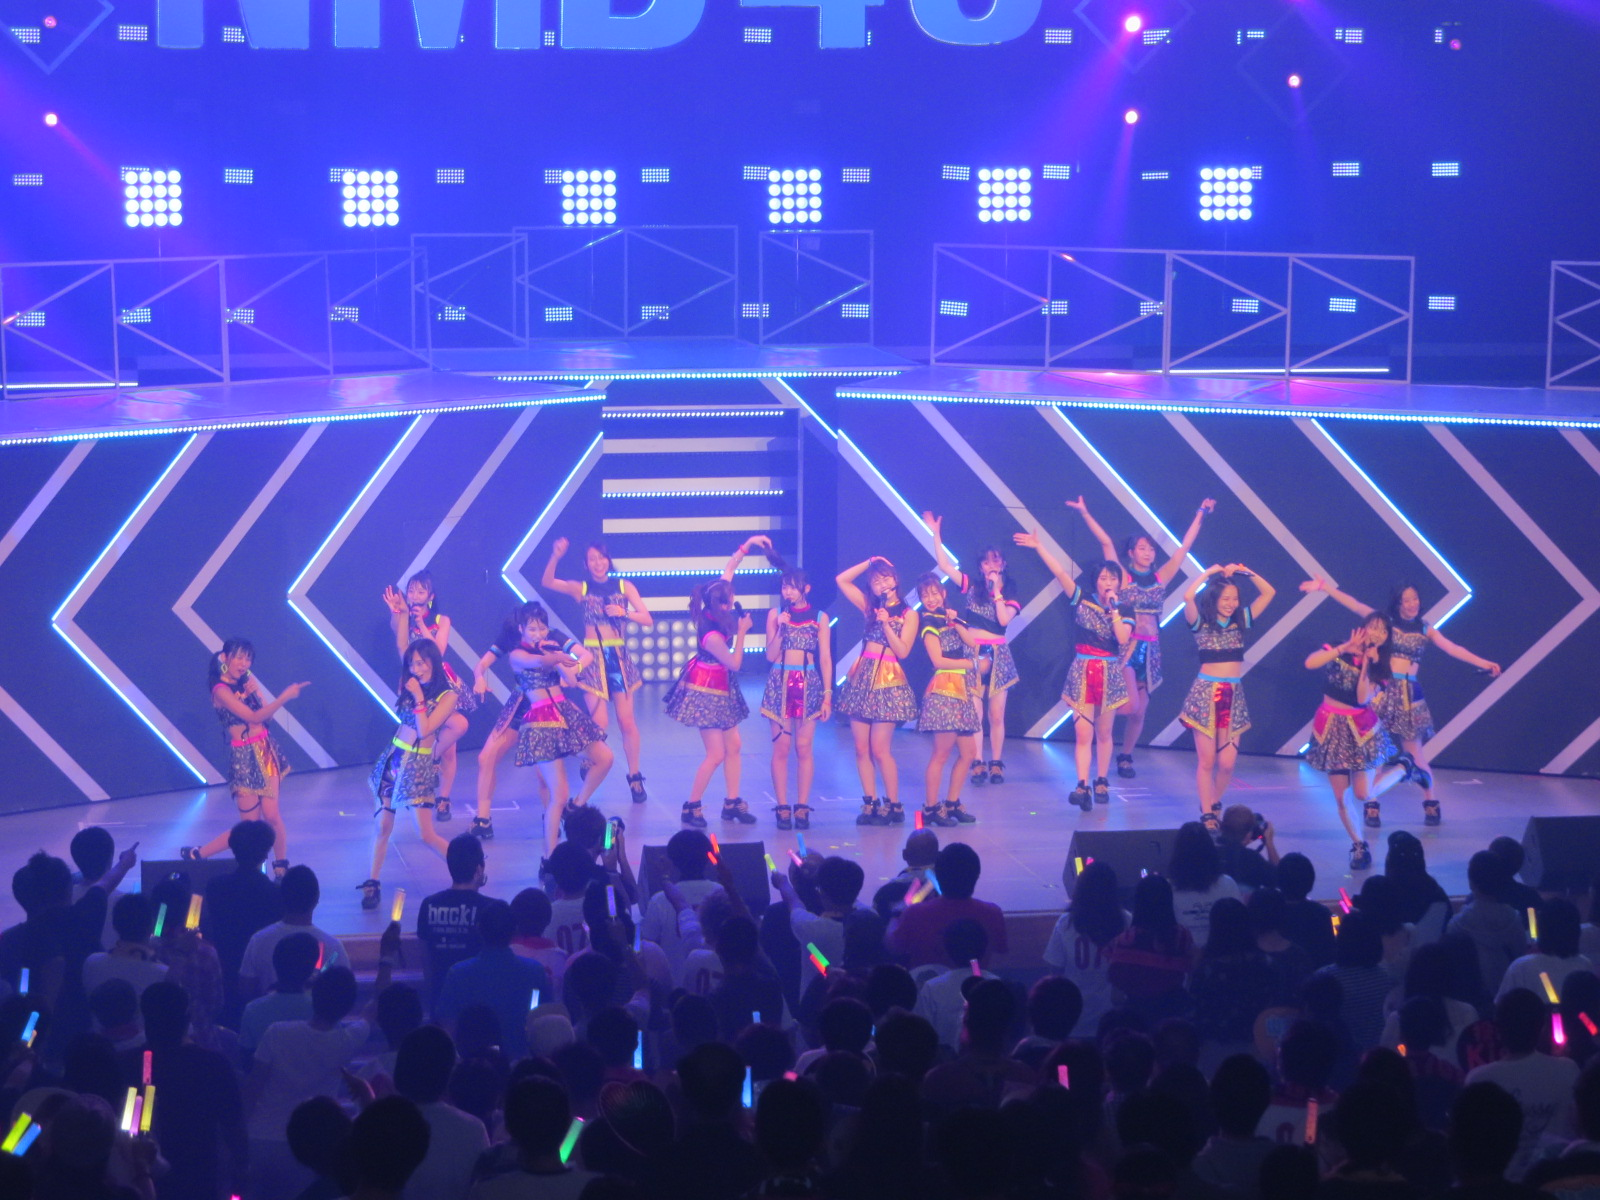 NMB48 LIVE TOUR 2018 in Summer・石川公演の画像-089